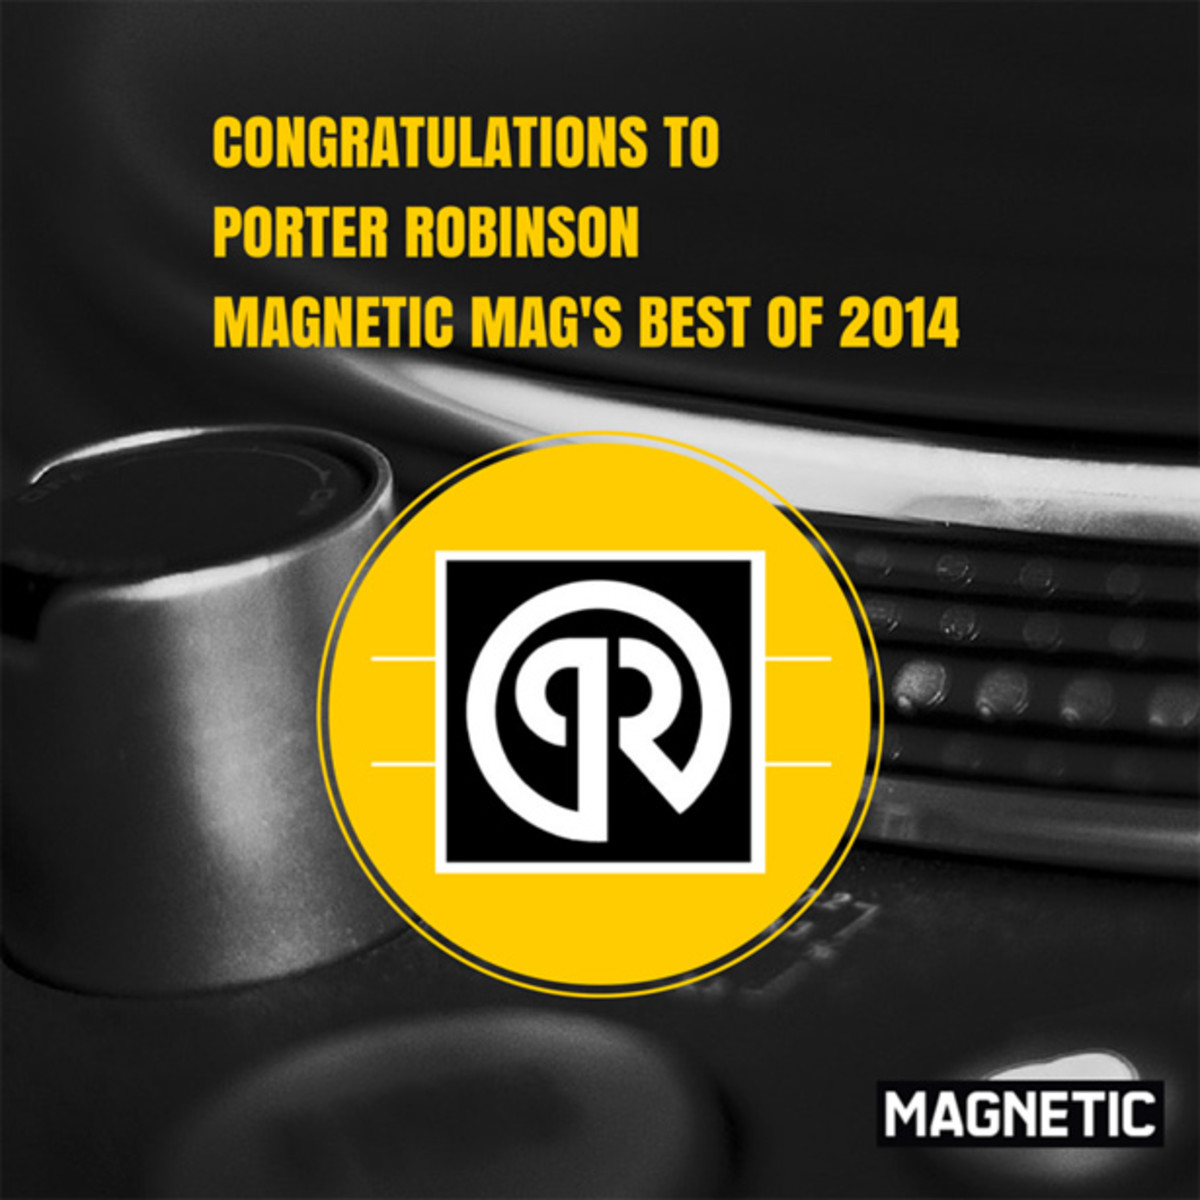 Magnetic Magazines Best Album 2014